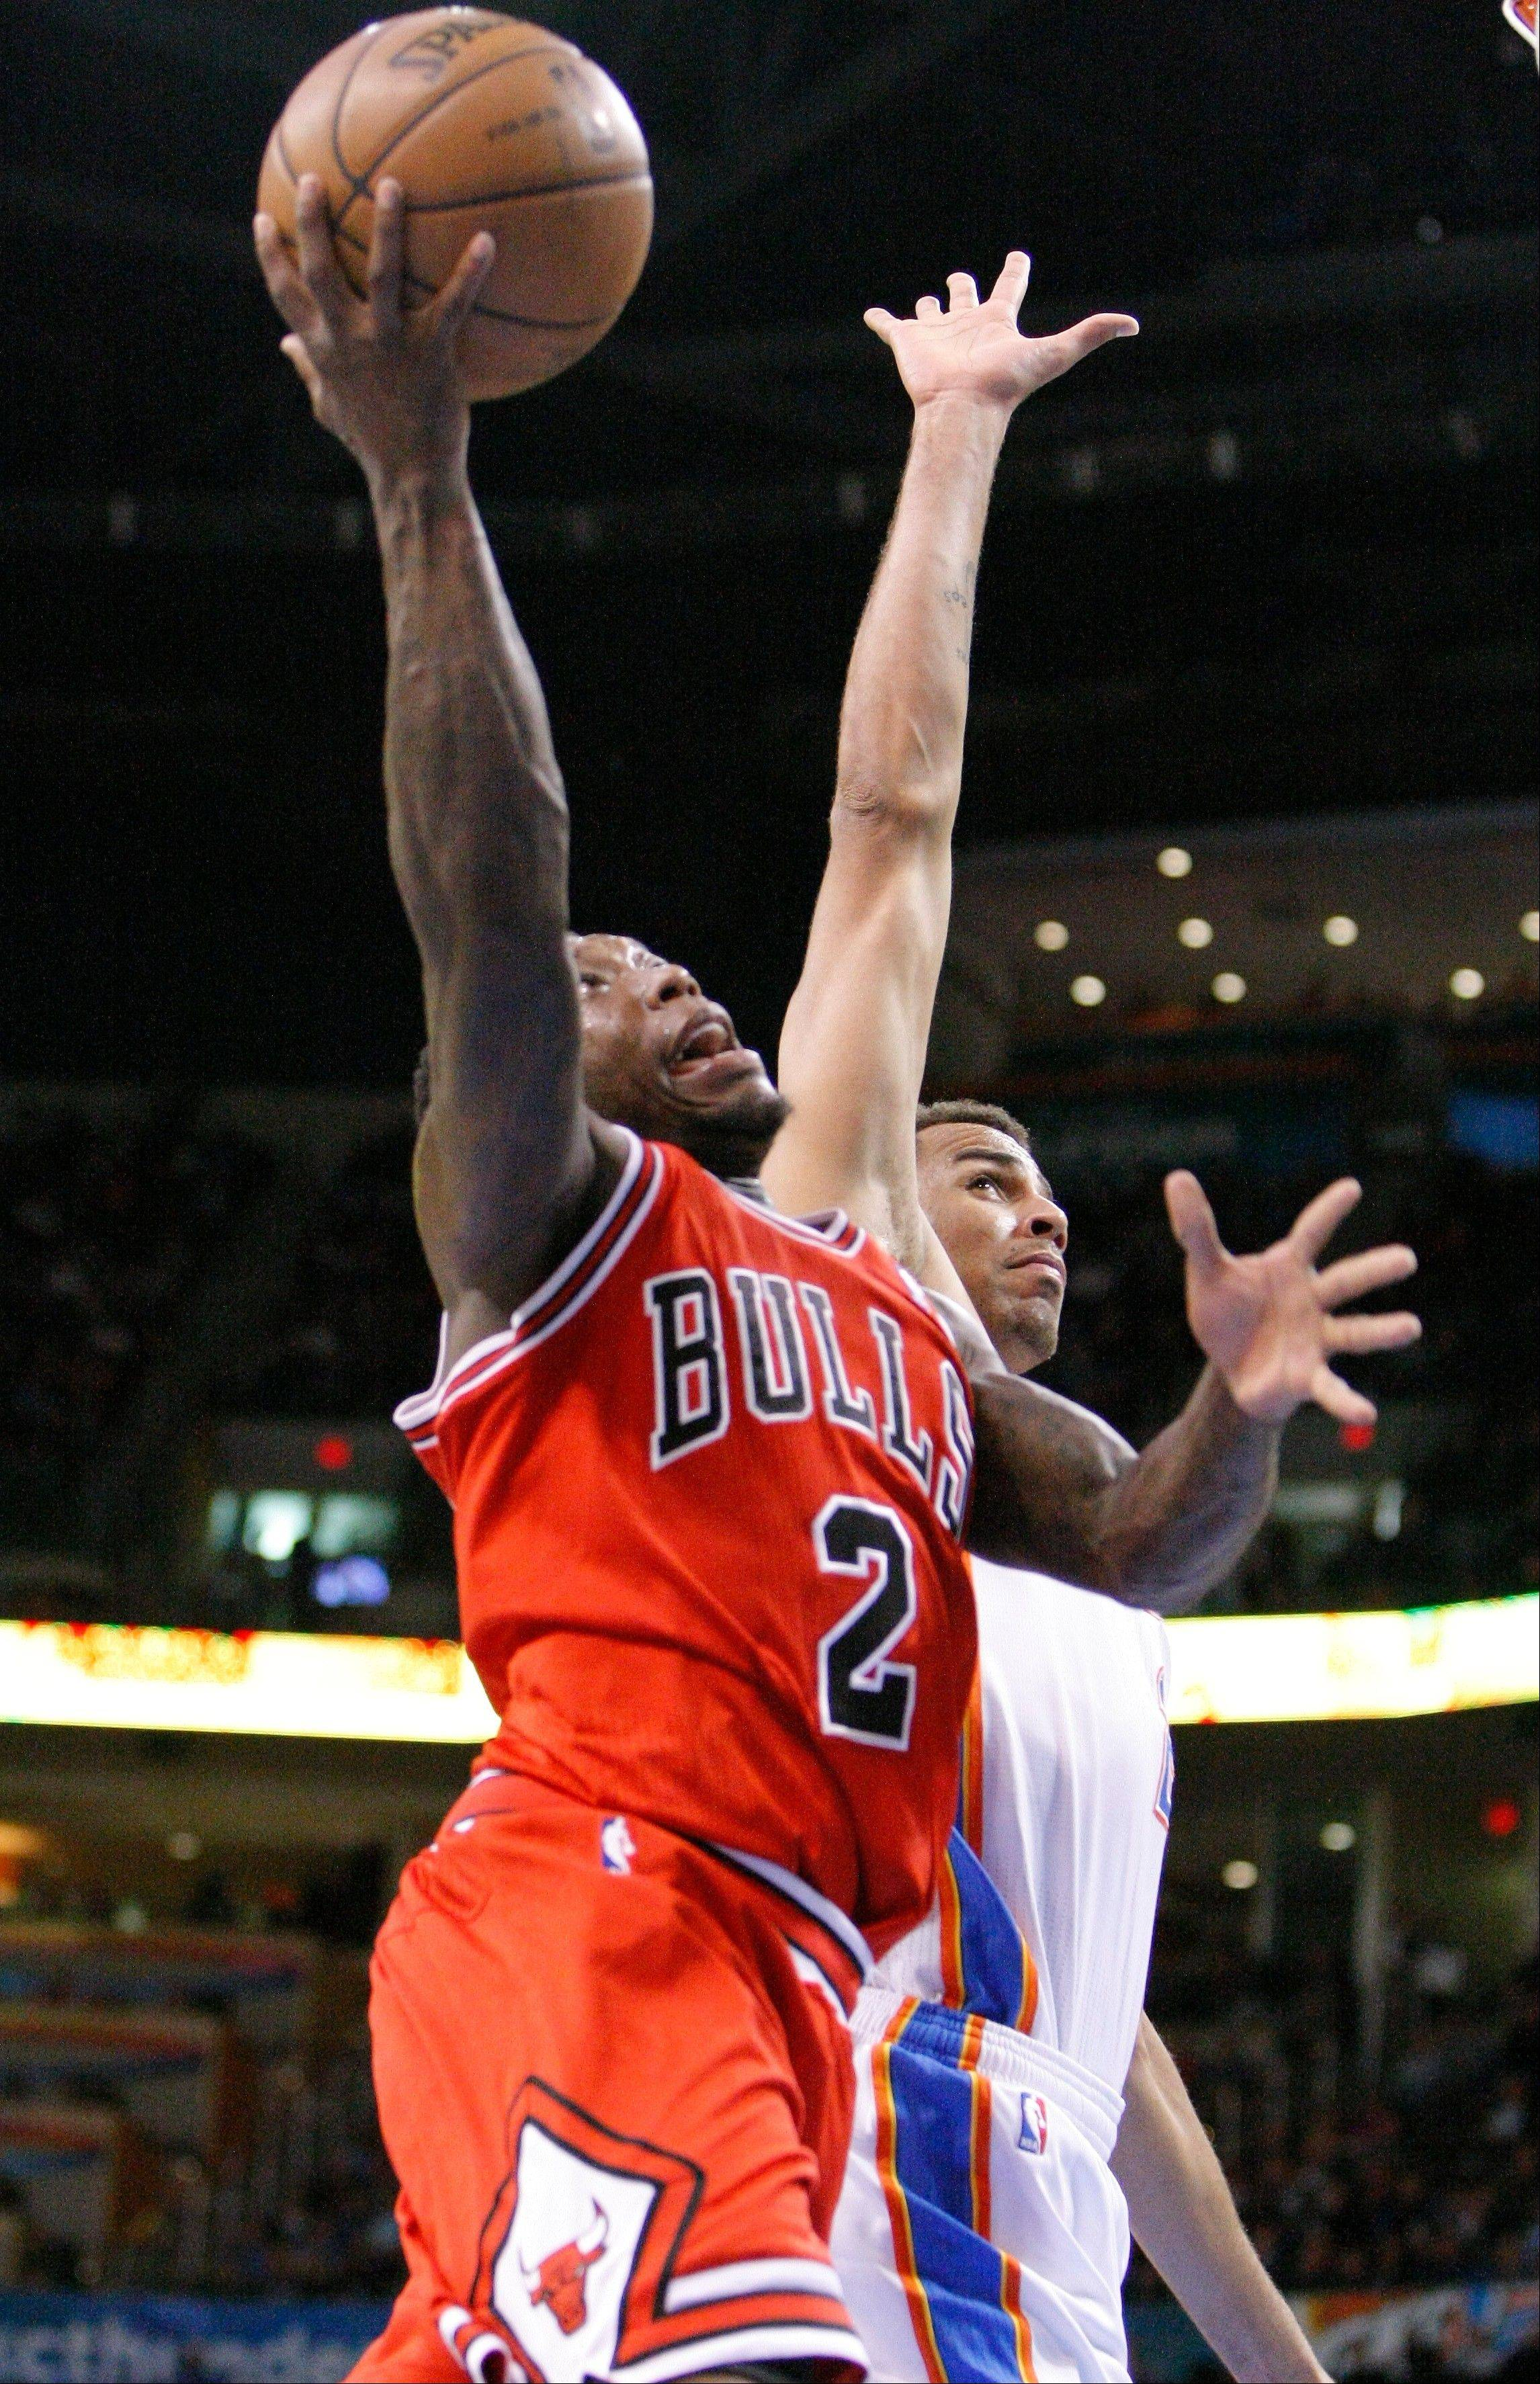 Chicago Bulls guard Nate Robinson, front, goes to the basket next to Oklahoma City Thunder guard Thabo Sefolosha during the second quarter of an NBA basketball game in Oklahoma City, Sunday, Feb. 24, 2013.